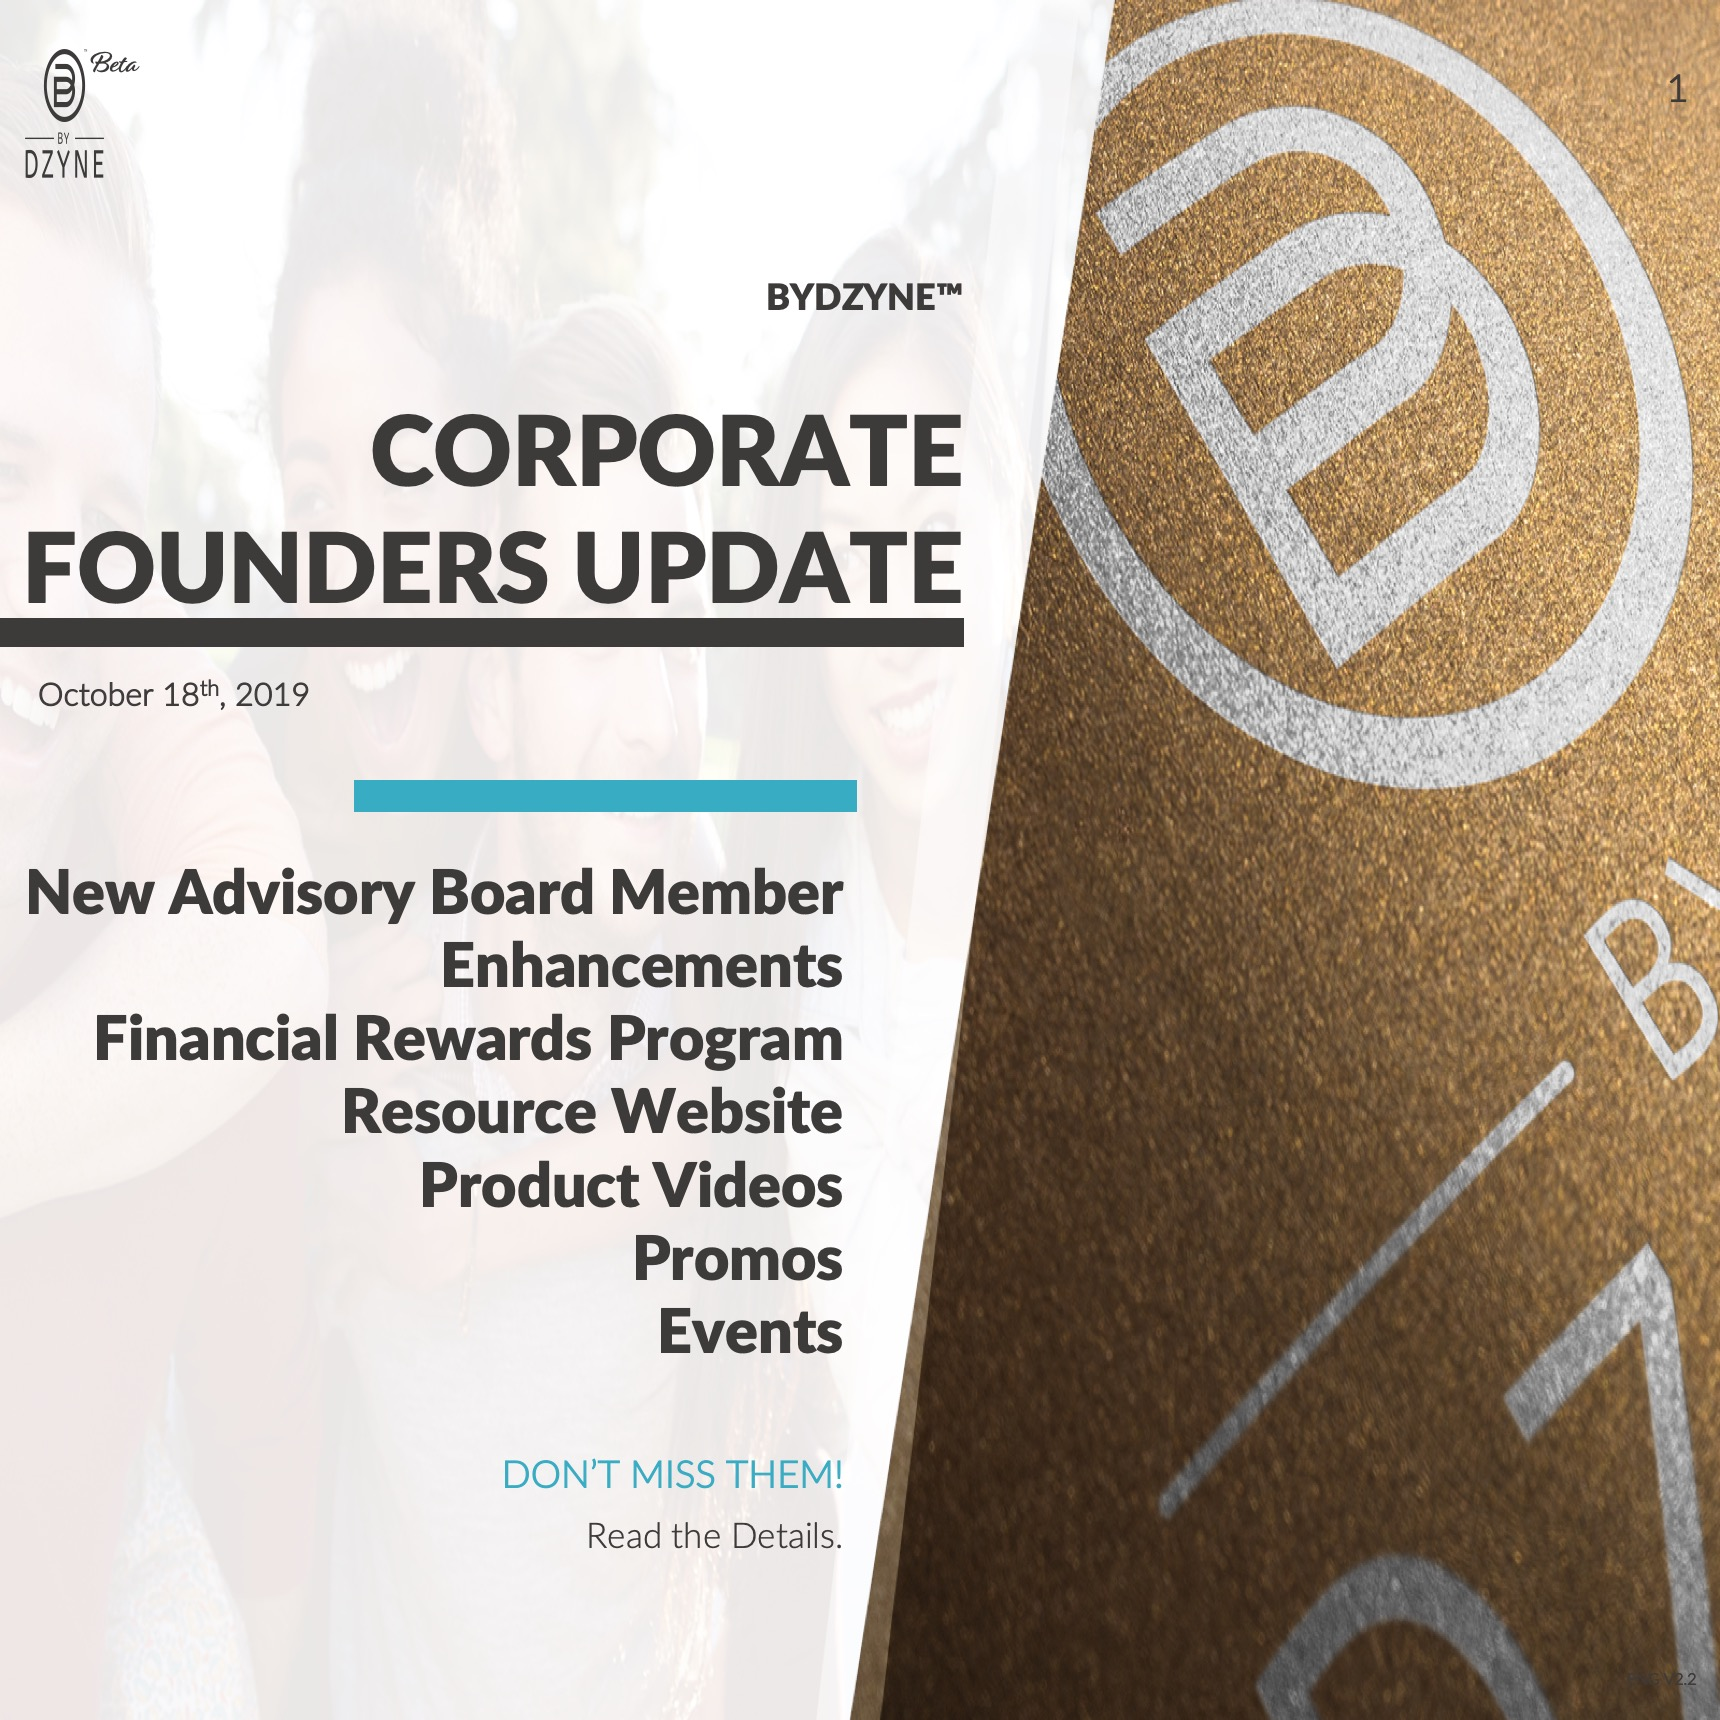 RECAP: Corporate Founders Call Update – October 18, 2019